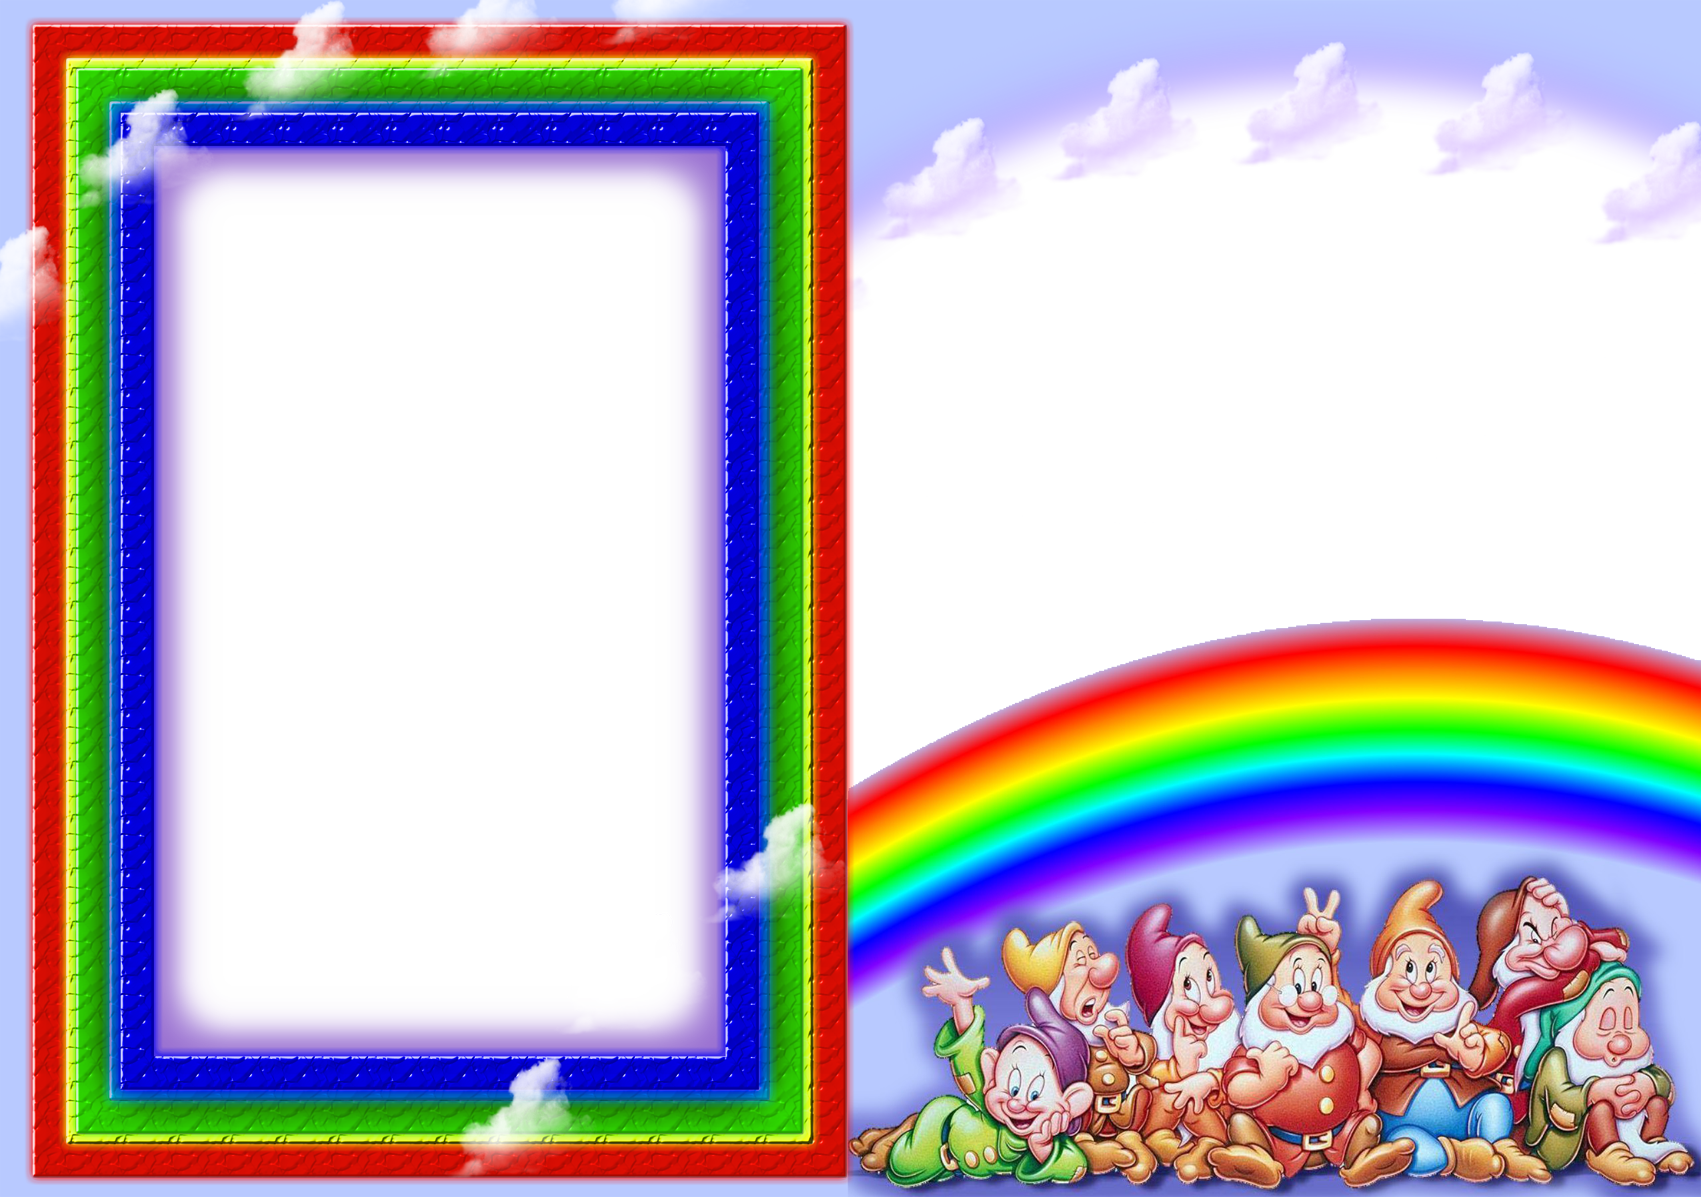 Children Photo Frame PNG PSD images free download